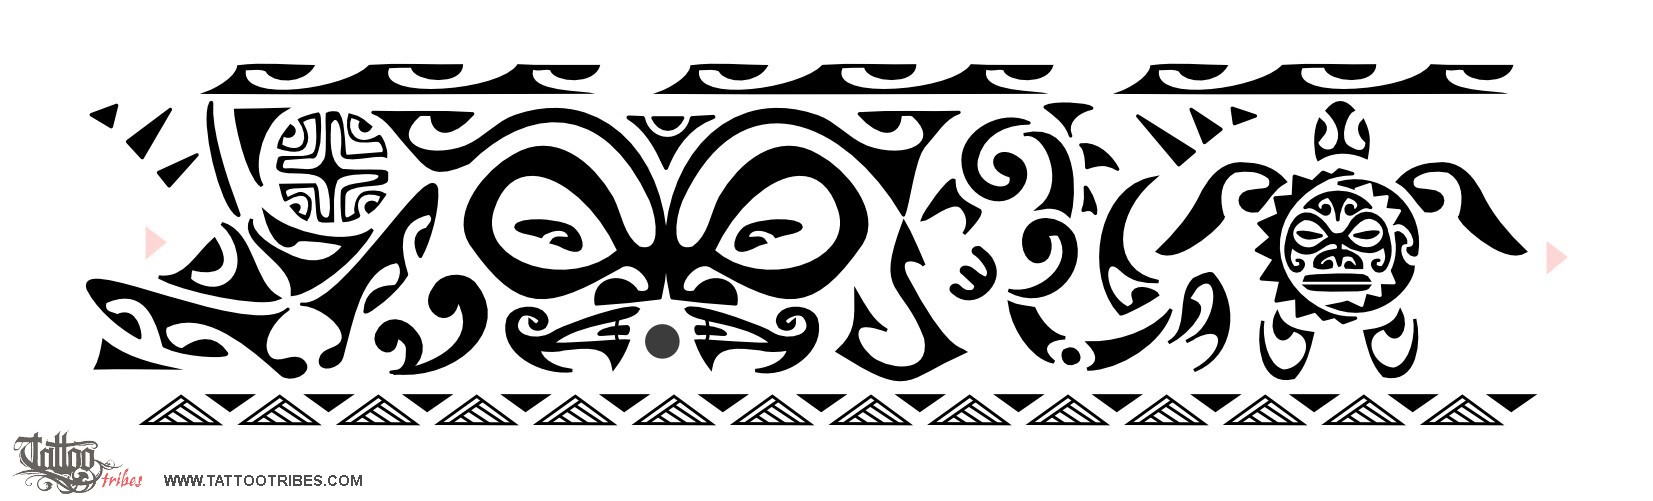 tattoo of polynesian ankle band protection balance tattoo custom tattoo designs on. Black Bedroom Furniture Sets. Home Design Ideas